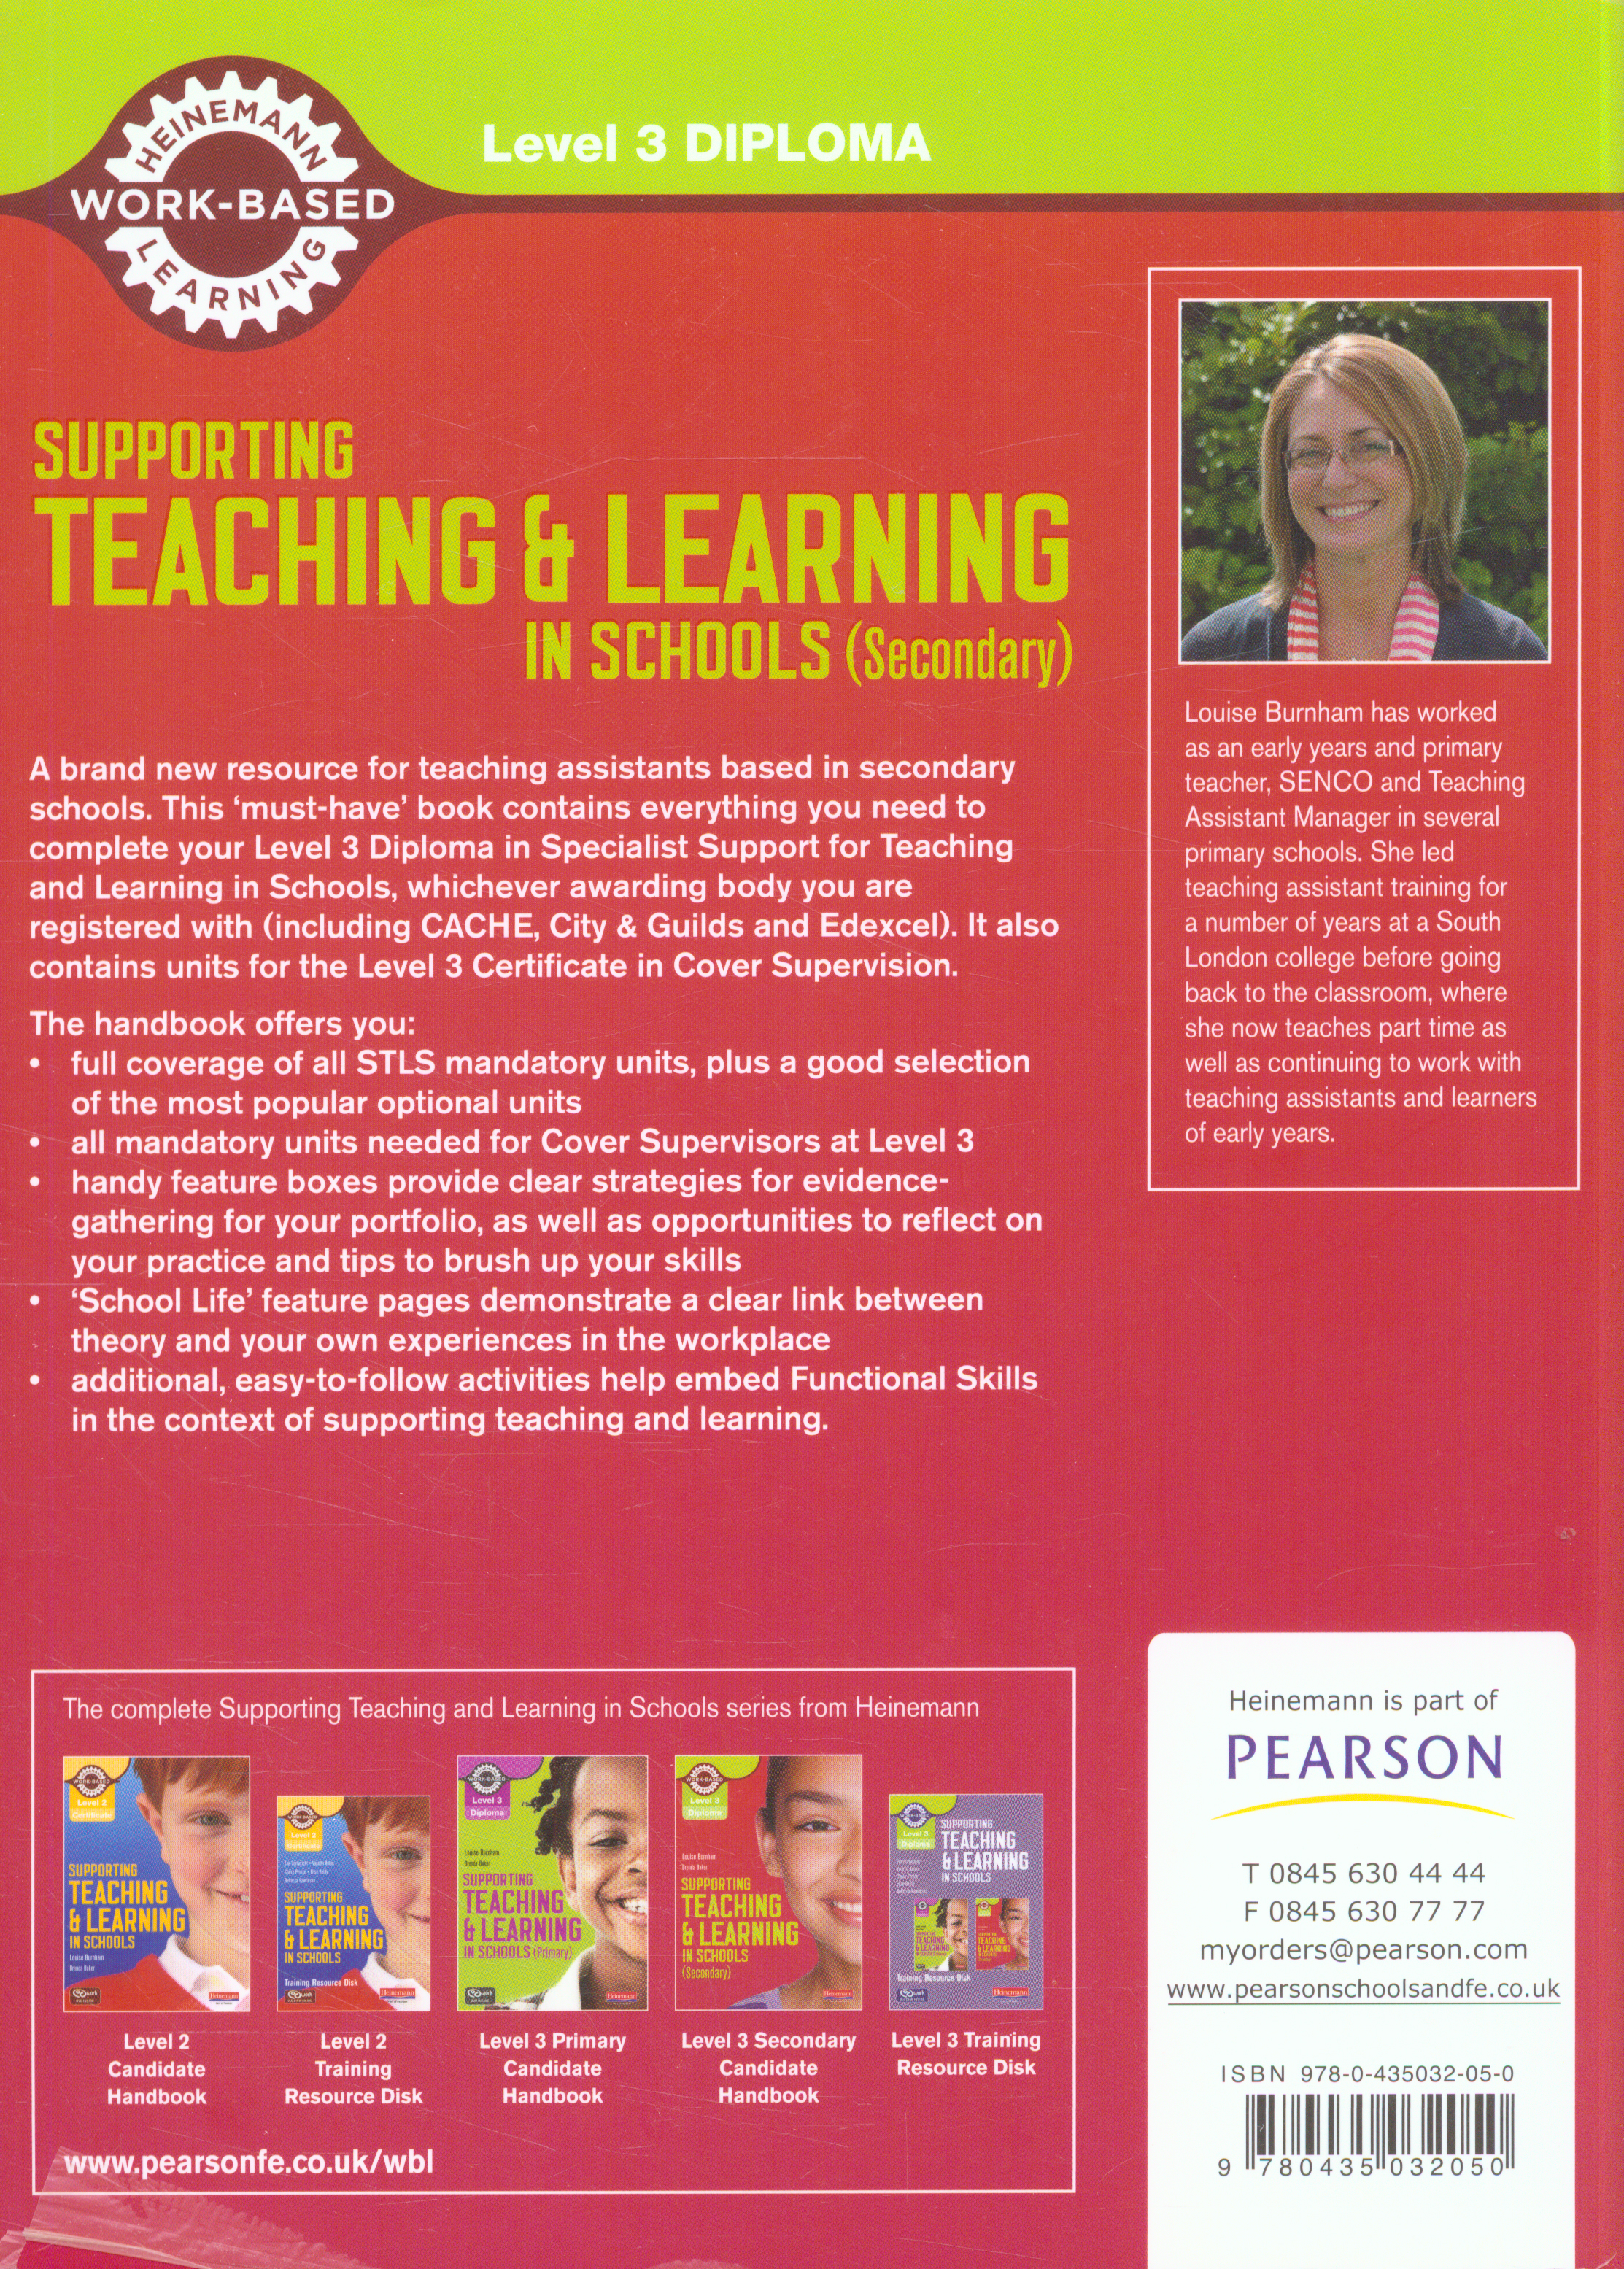 supporting teaching and learning in schools Overview this qualification will enable the student to develop the knowledge and skills needed when supporting teaching and learning in schools.